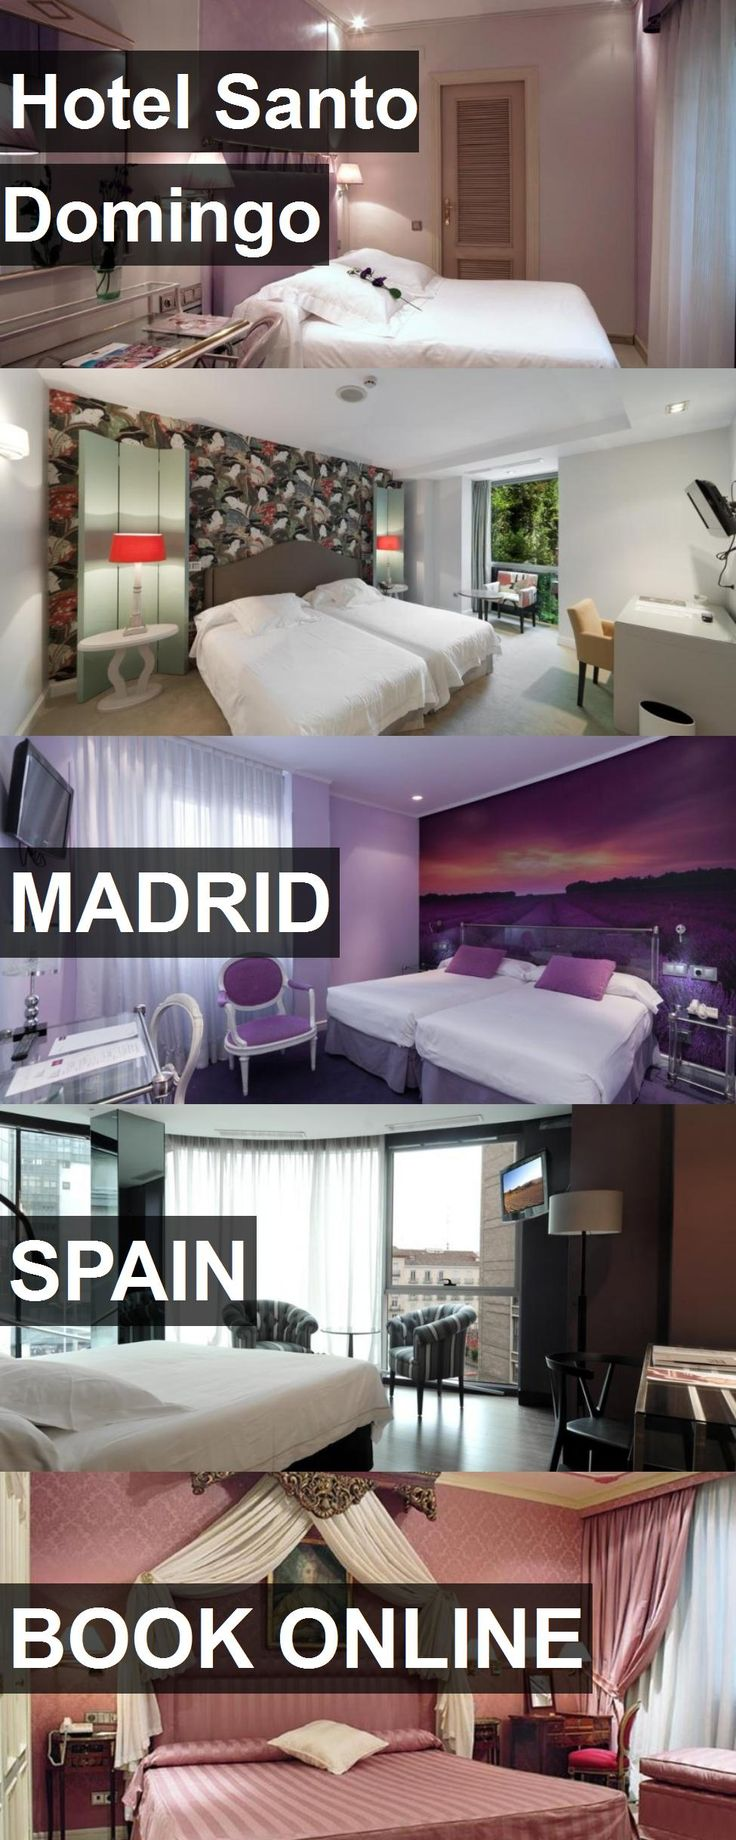 Hotel Santo Domingo in Madrid, Spain. For more information, photos, reviews and best prices please follow the link. #Spain #Madrid #travel #vacation #hotel